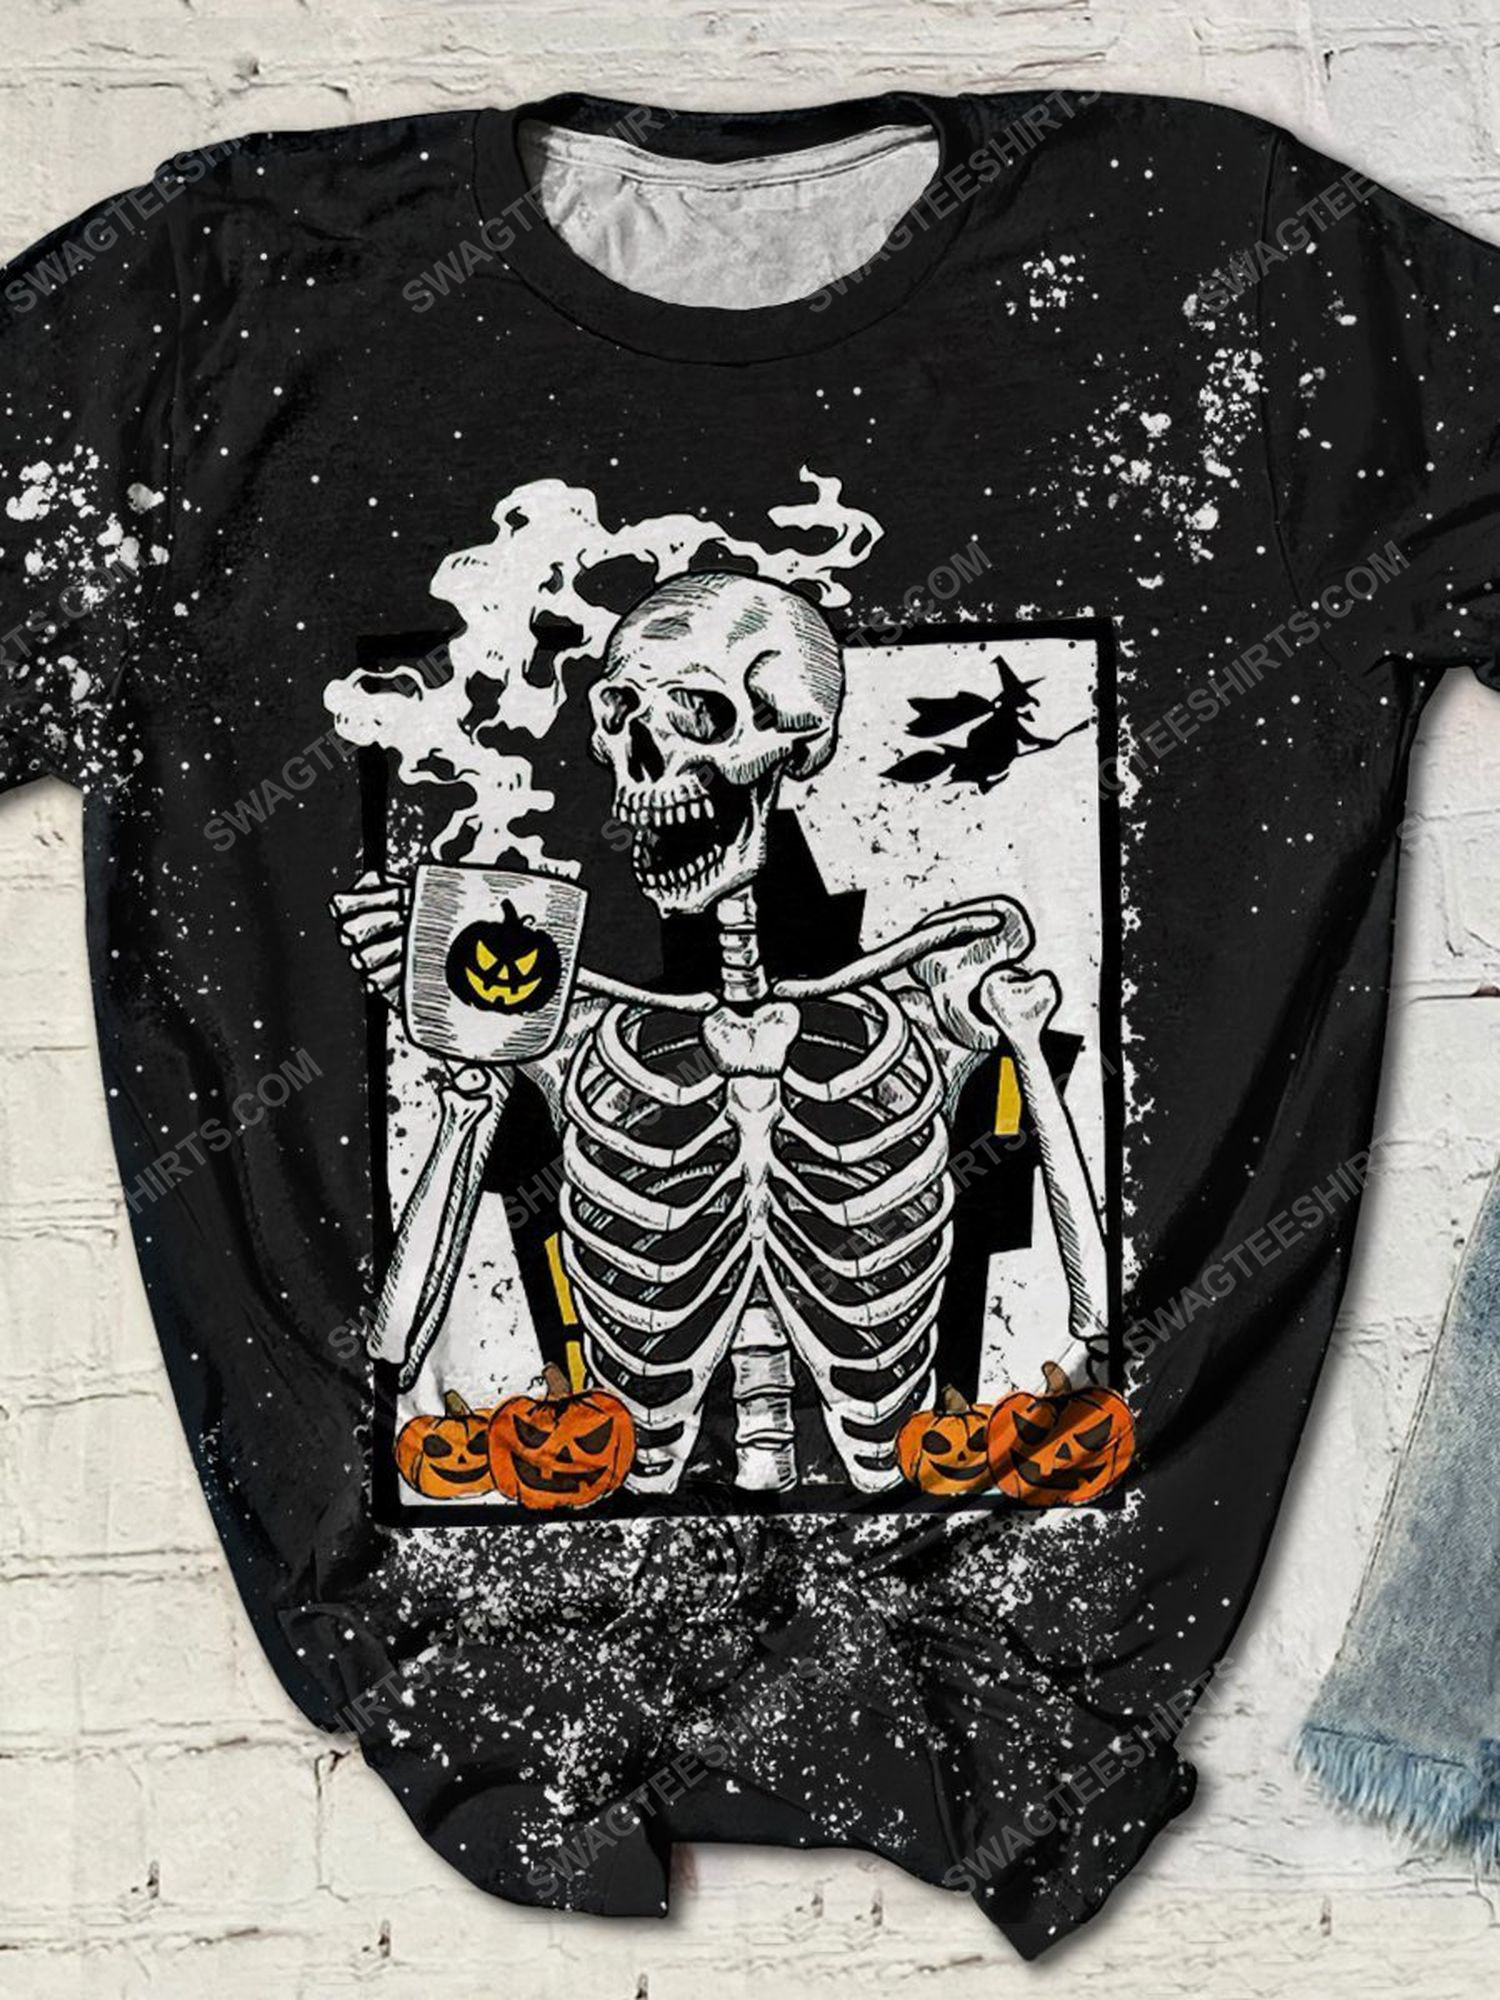 Halloween skull and coffee bleached shirt 1 - Copy